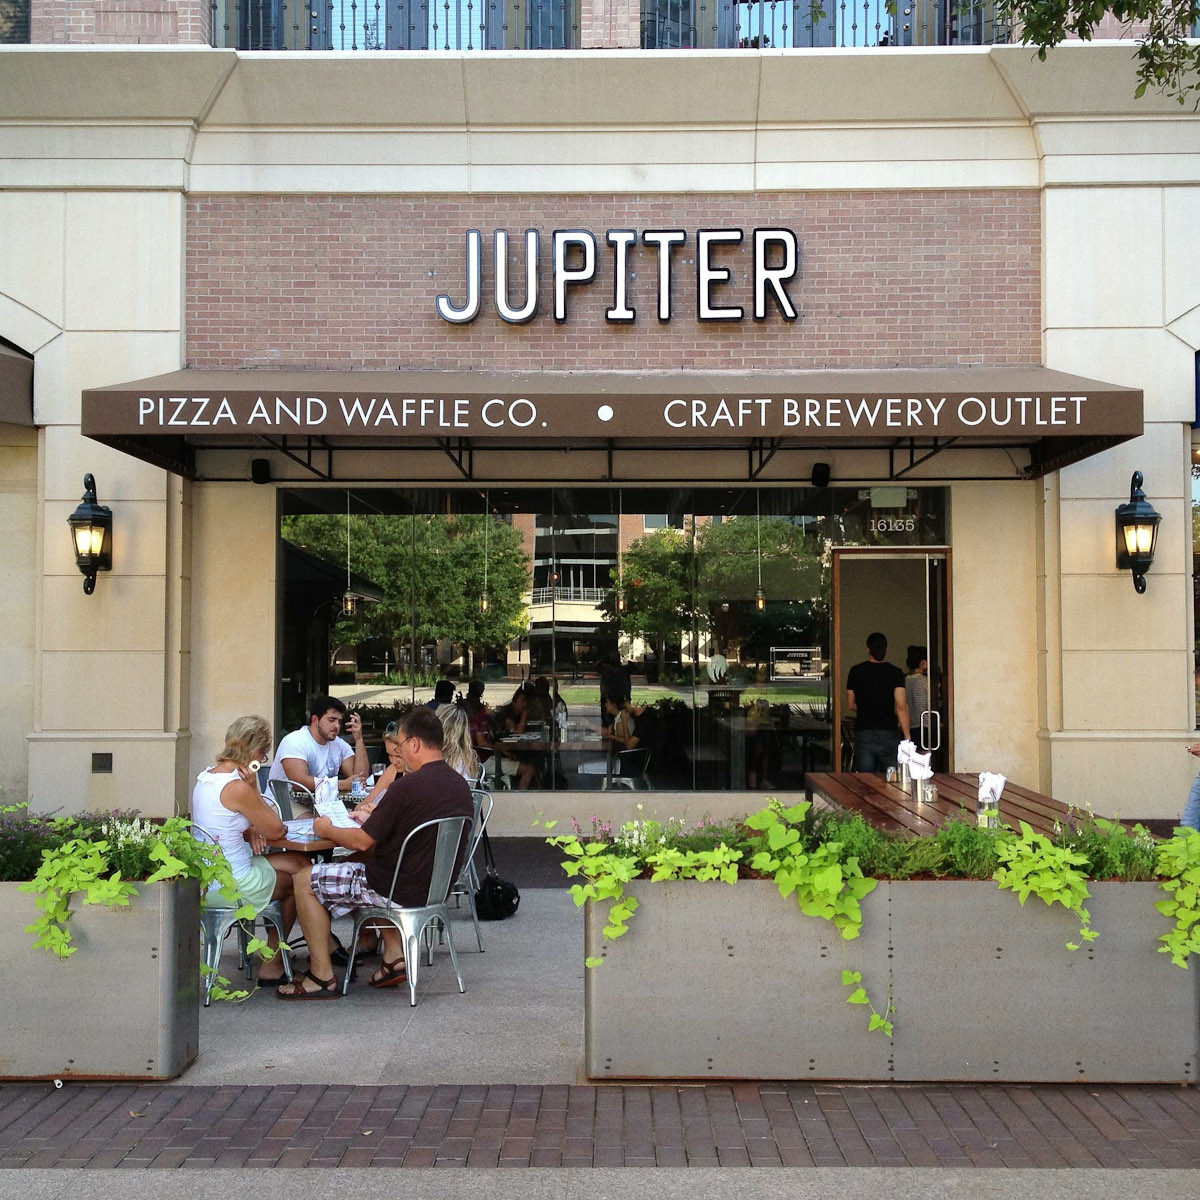 2 Jupiter Pizza & Waffle Co. August 2013 exterior